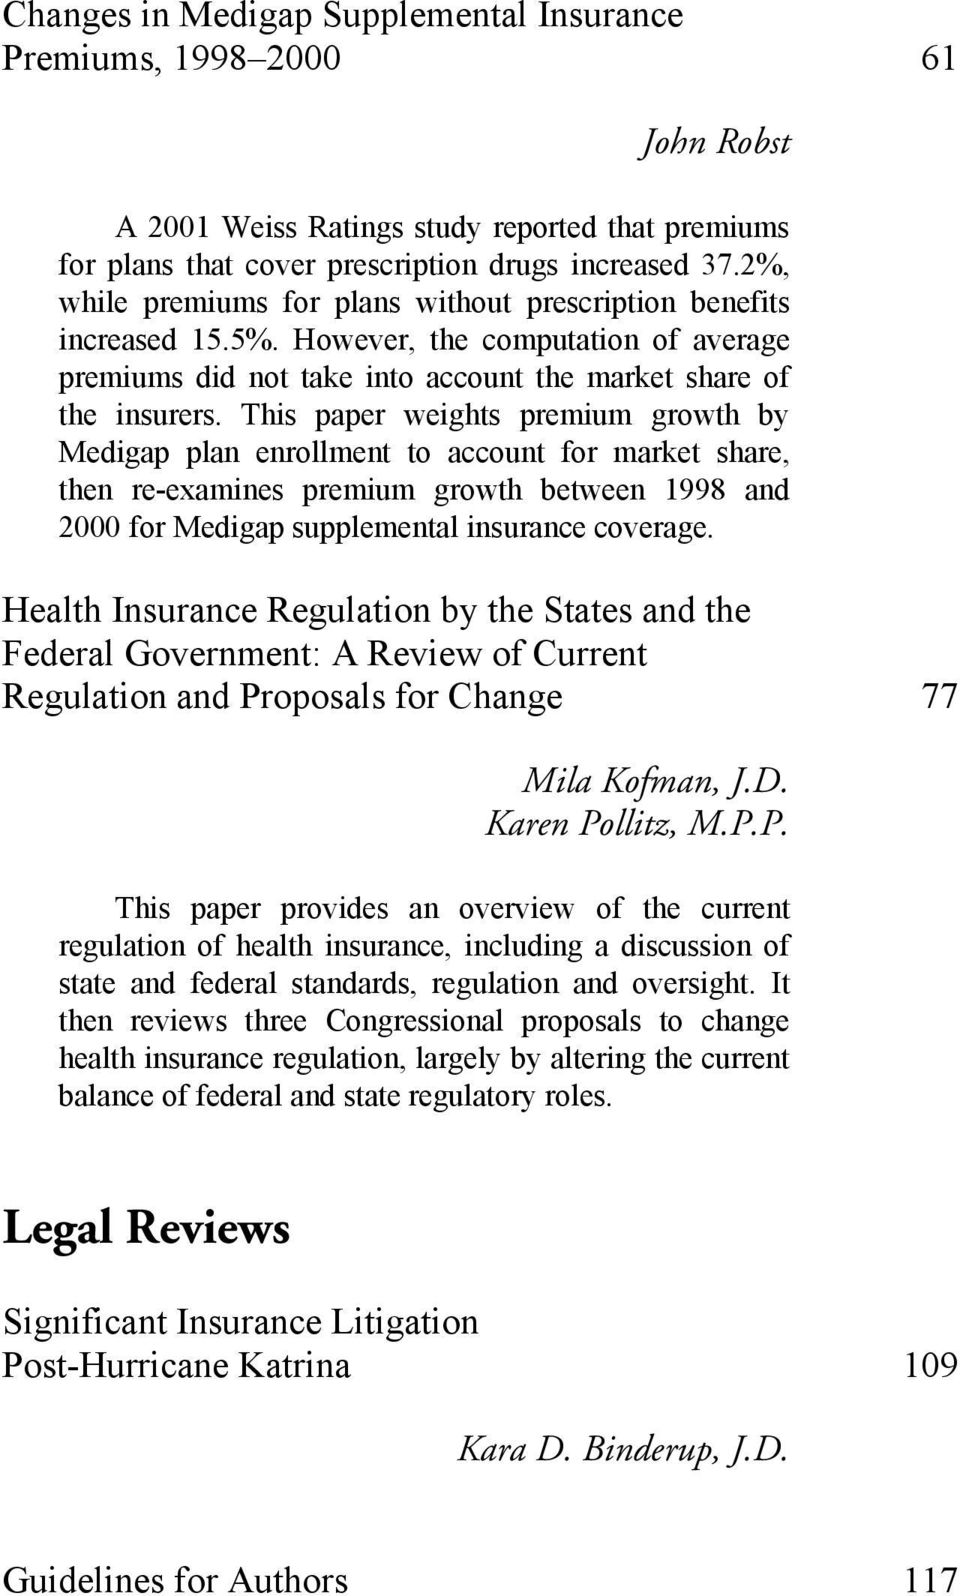 This paper weights premium growth by Medigap plan enrollment to account for market share, then re-examines premium growth between 1998 and 2000 for Medigap supplemental insurance coverage.